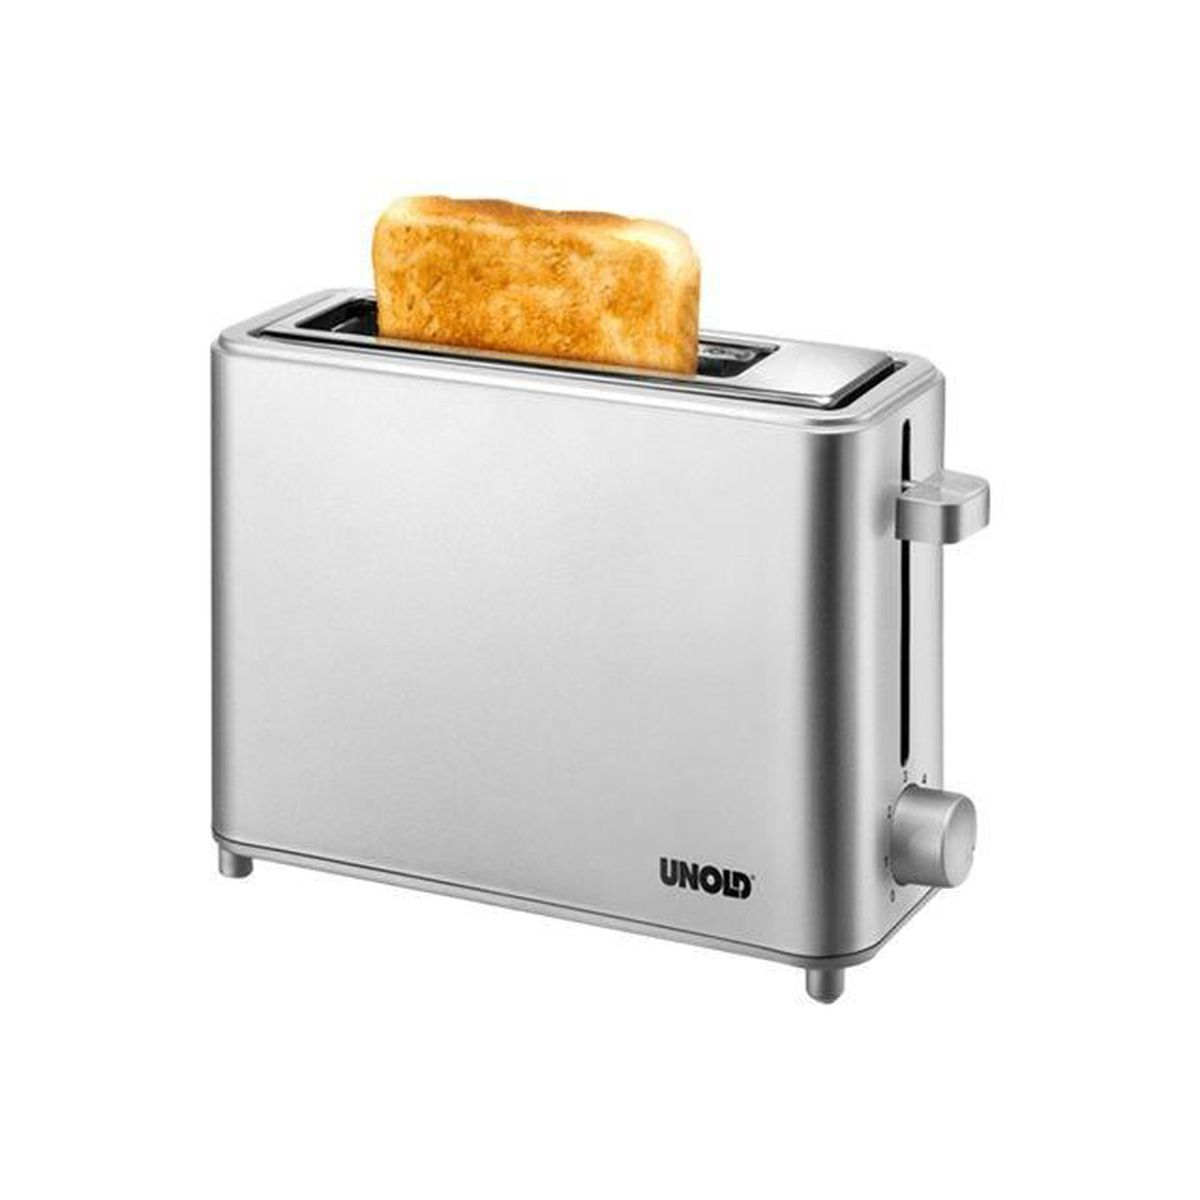 unold 38110 1 slice toaster 550 watt achat vente grille pain toaster soldes cdiscount. Black Bedroom Furniture Sets. Home Design Ideas